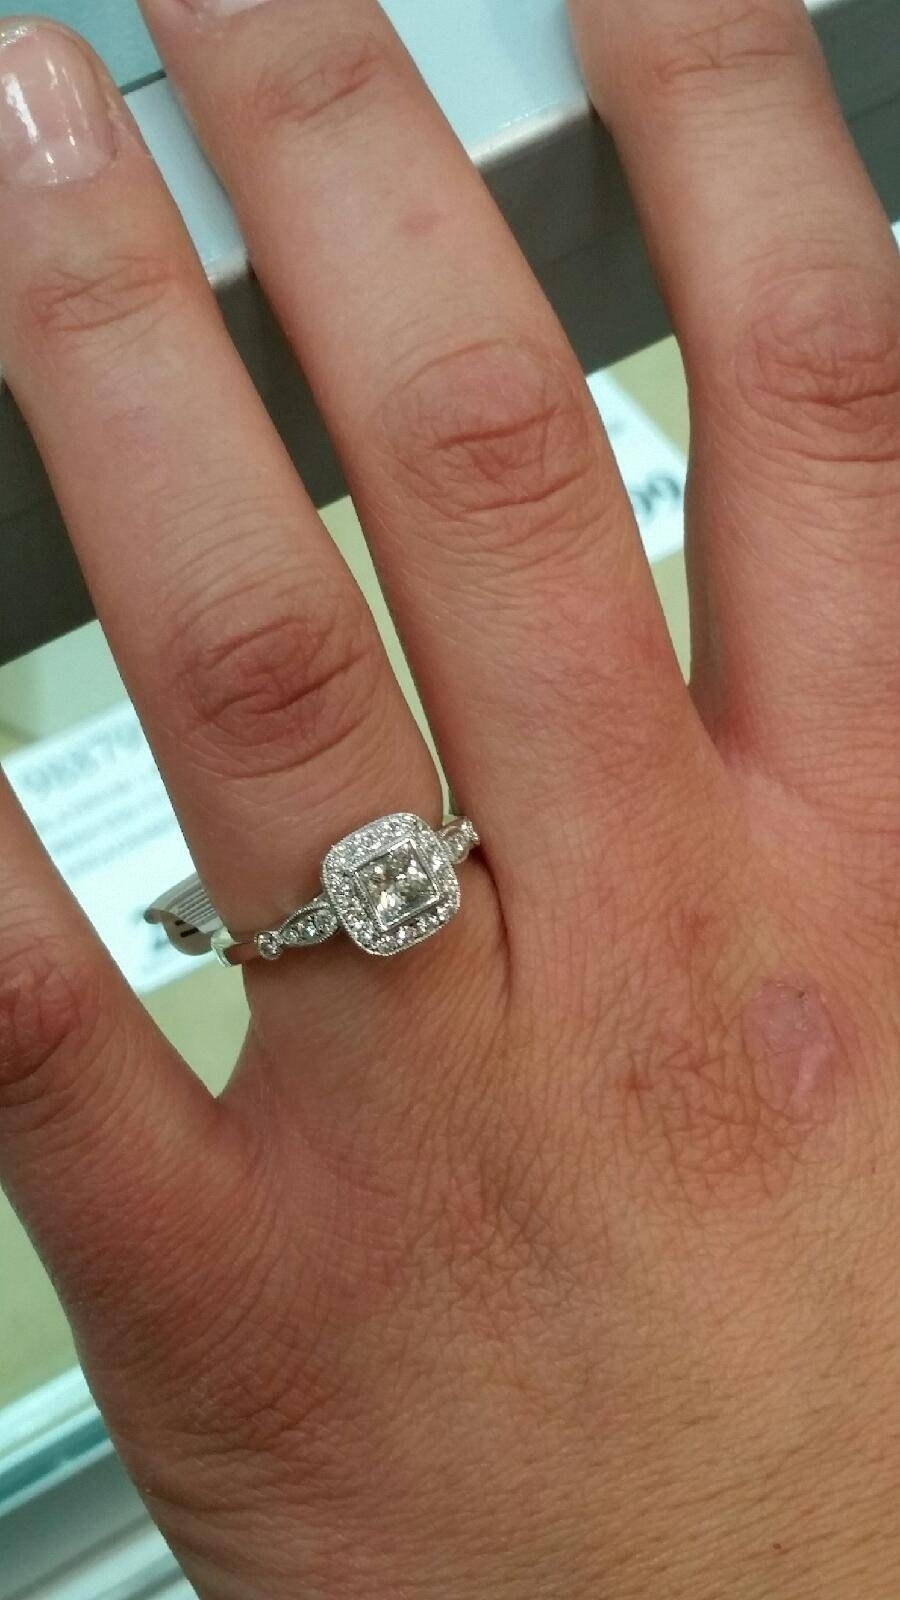 2018 Popular Costco Diamond Wedding Bands In Most Recently Released Costco Wedding Bands (View 1 of 15)